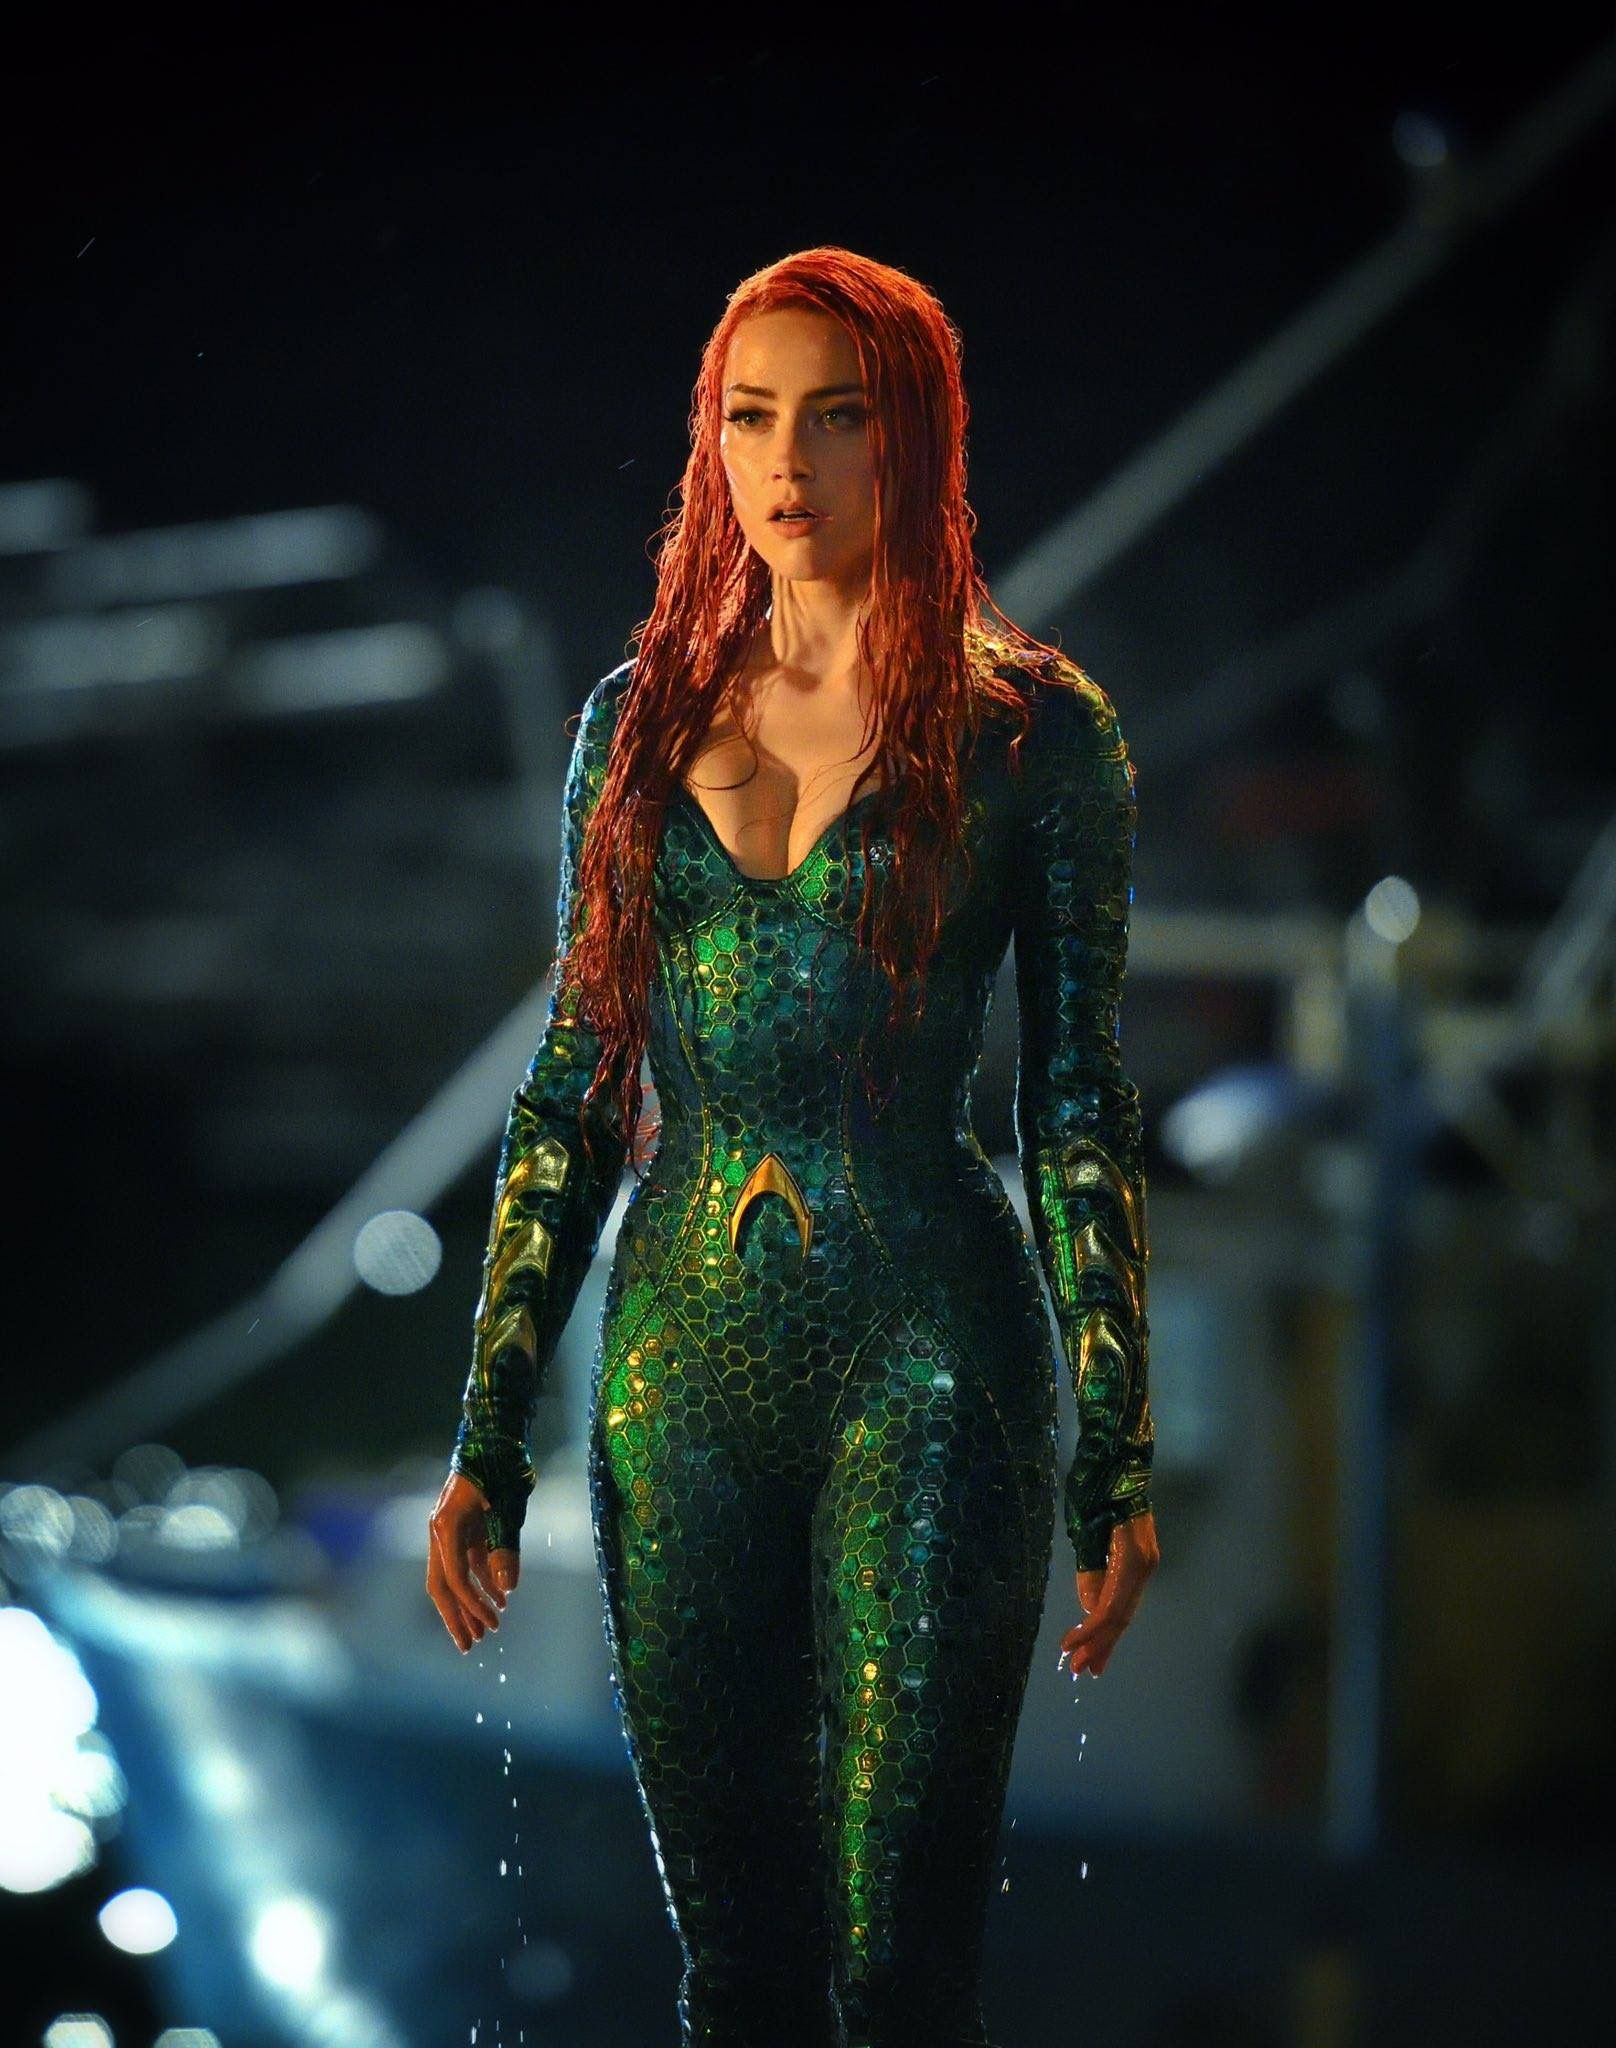 Justice League Mera Aquaman Amber Heard New Aquaman